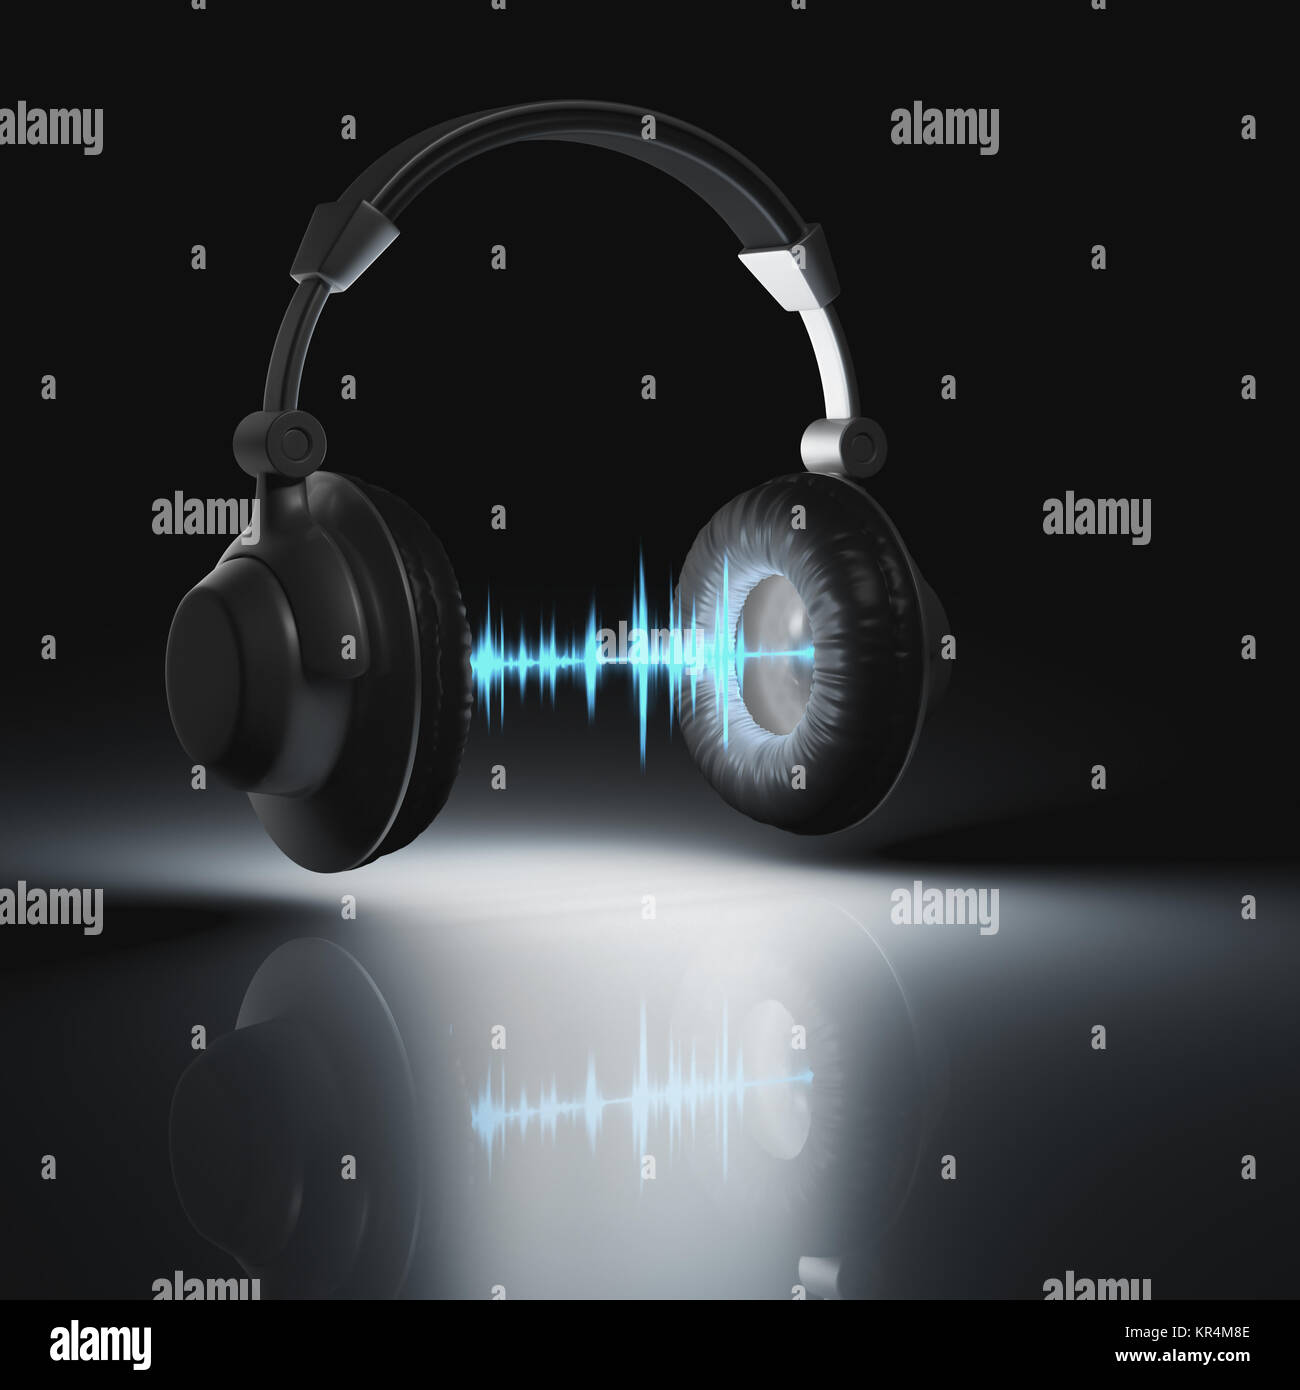 Headset Graphic Equalizer Stock Photo: 169134126 - Alamy